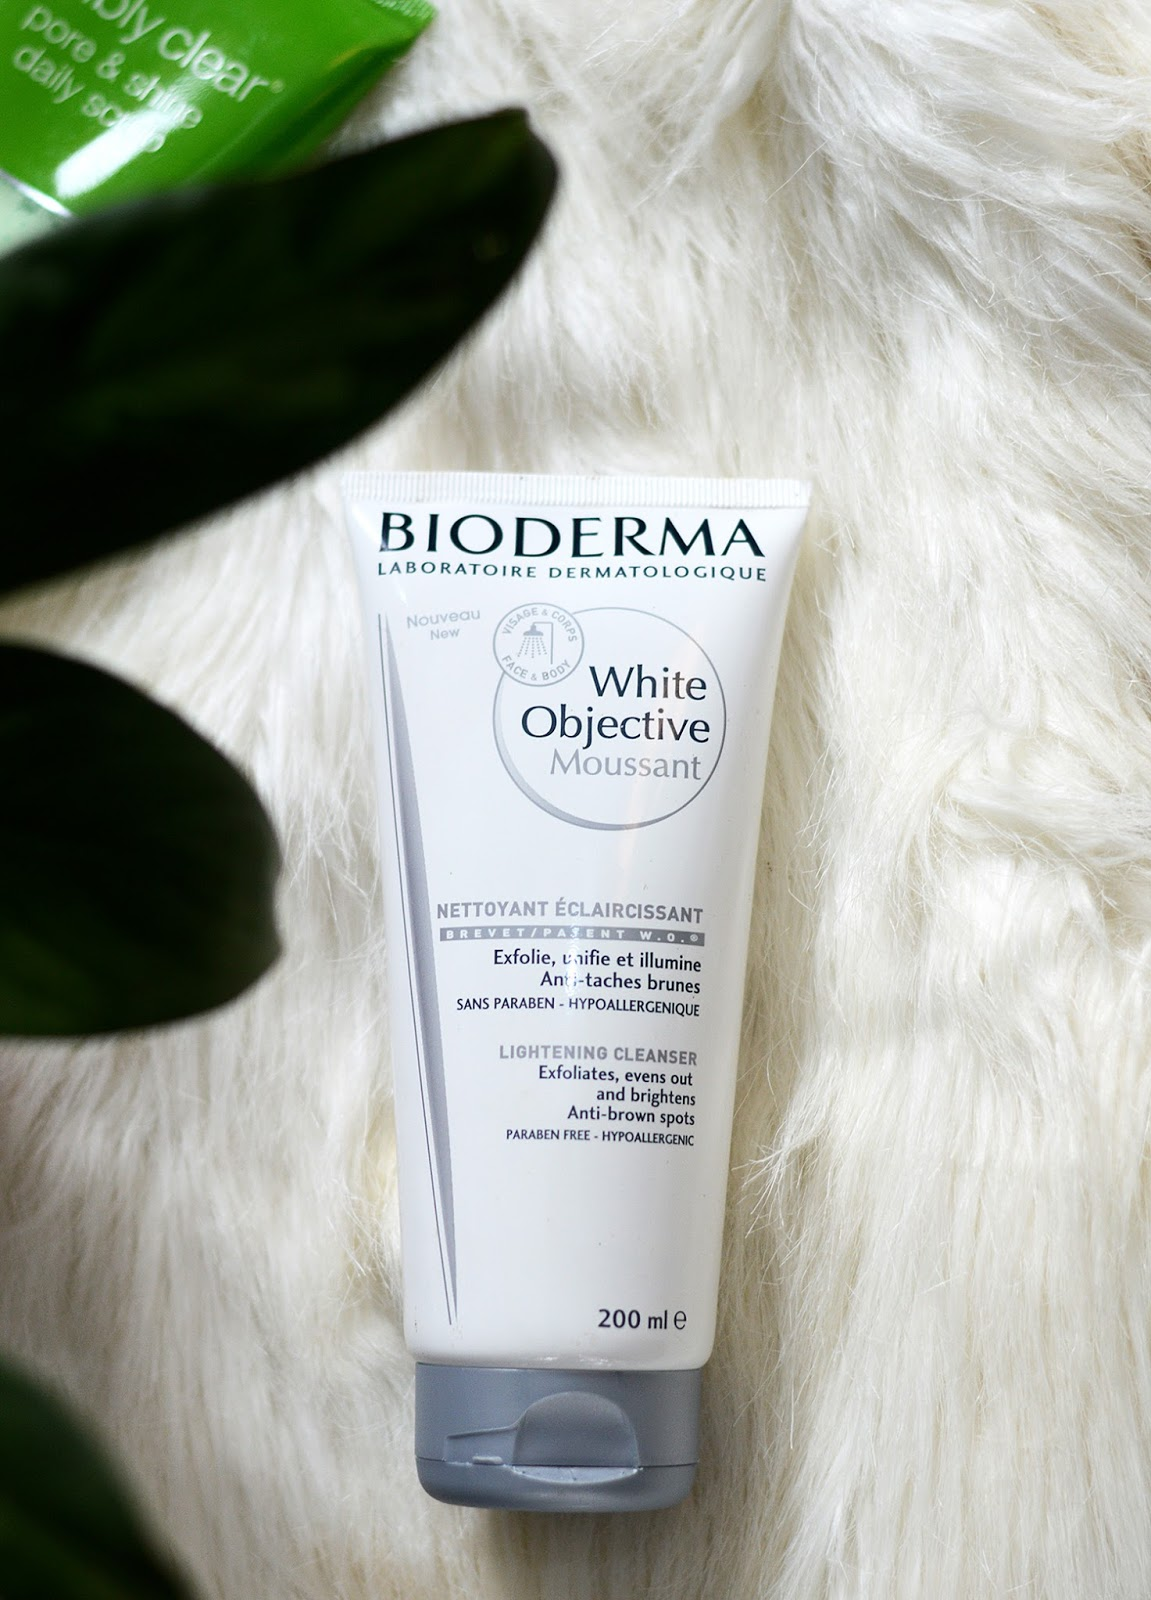 Bioderma_White_Objective_Moussant_Lightening_Cleanser